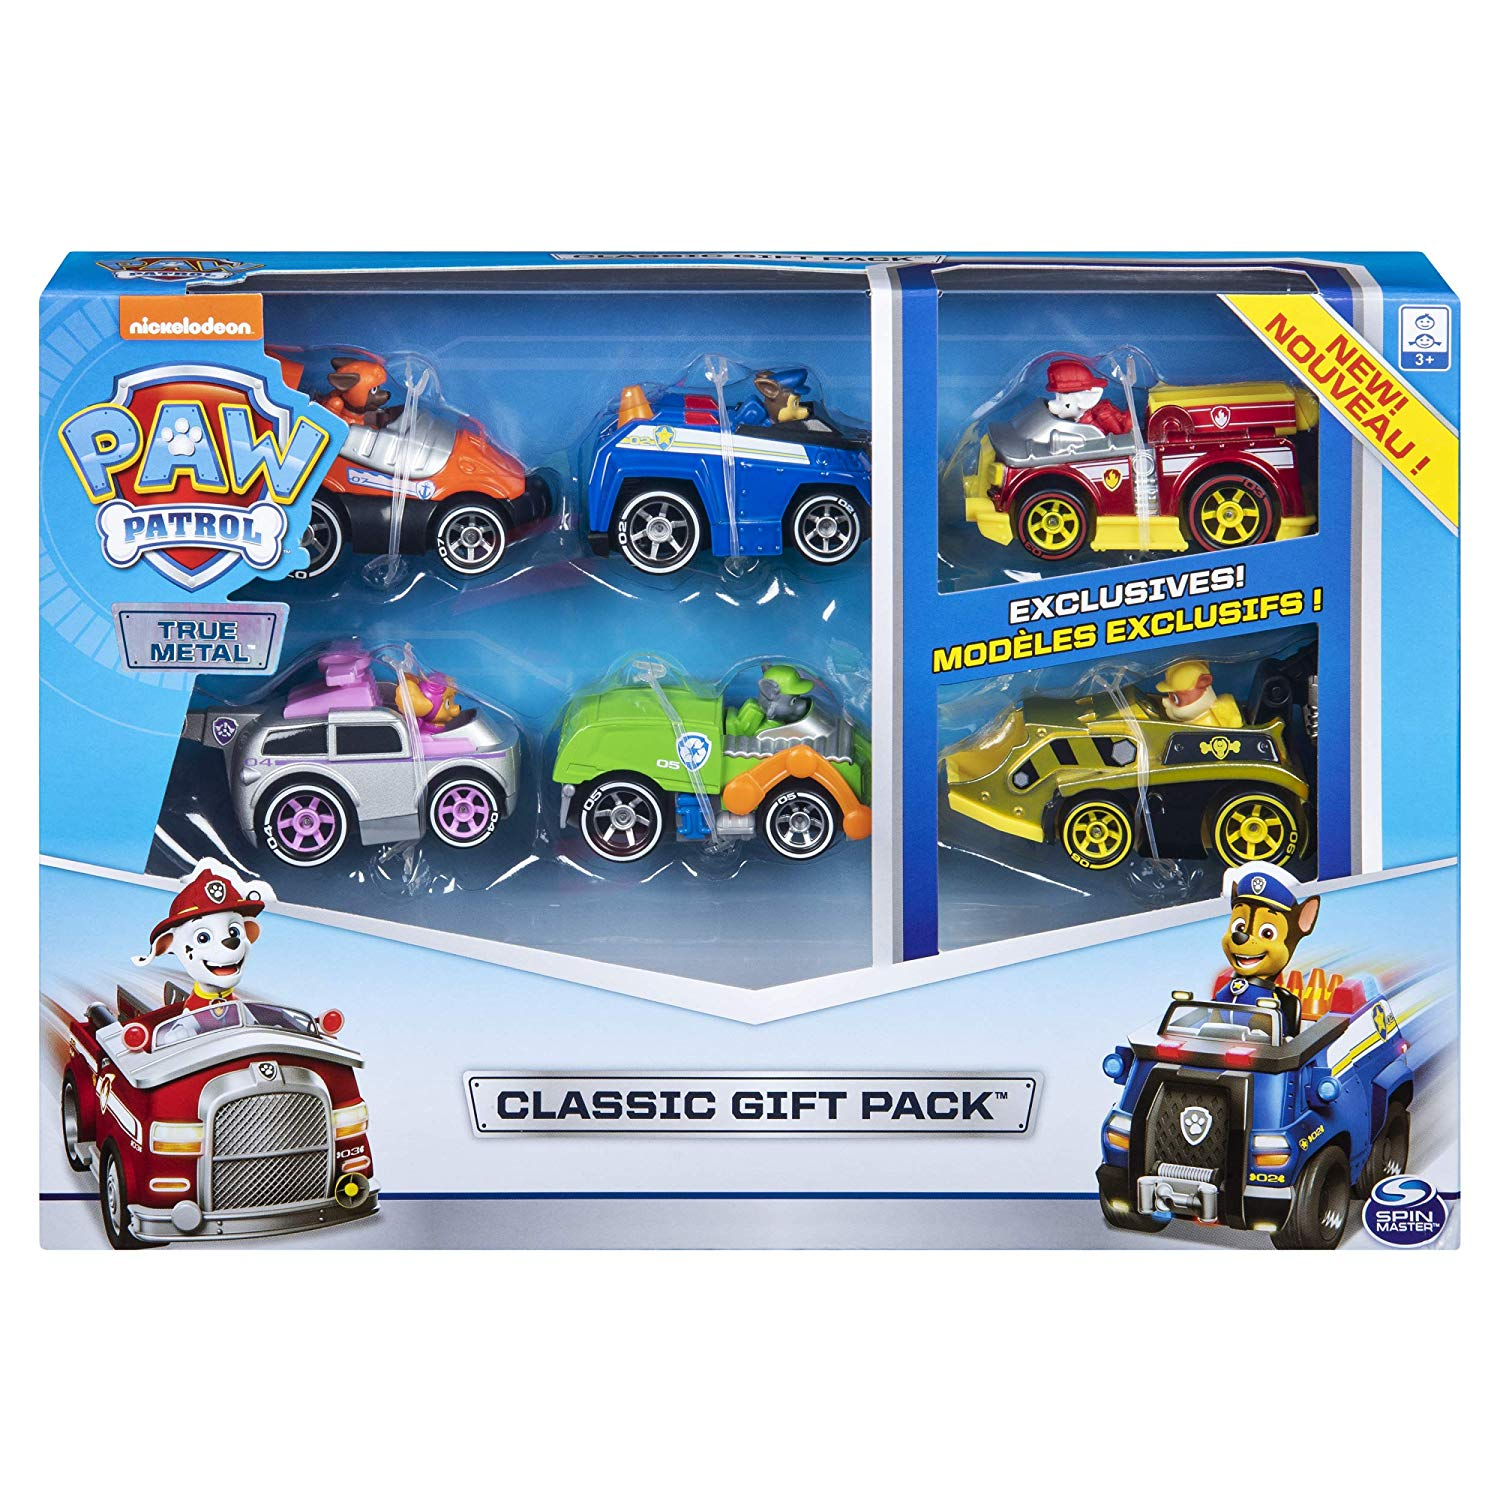 Paw Patrol, True Metal Classic Gift Pack of 6 Collectible DIE-CAST Vehicles